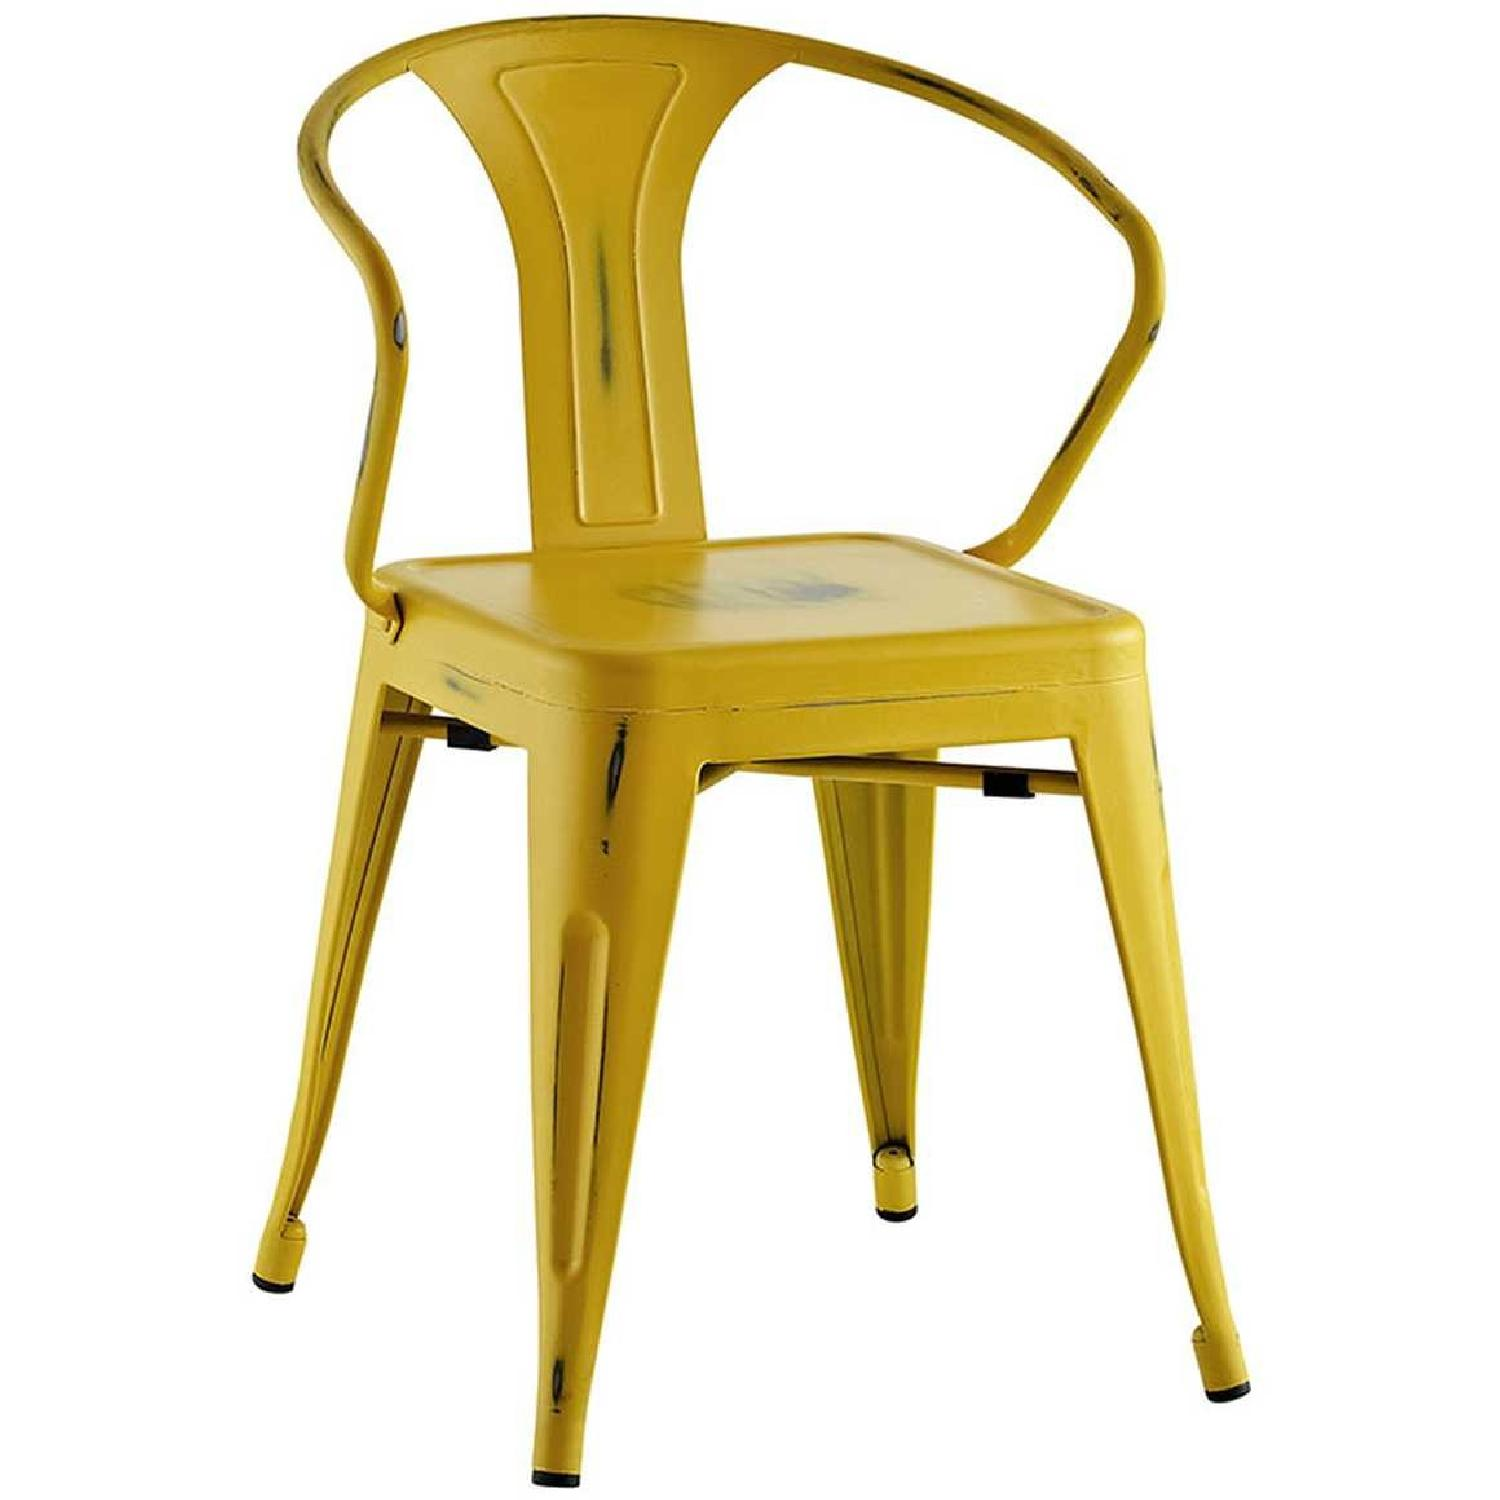 Modway Promenade Dining Chairs in Yellow